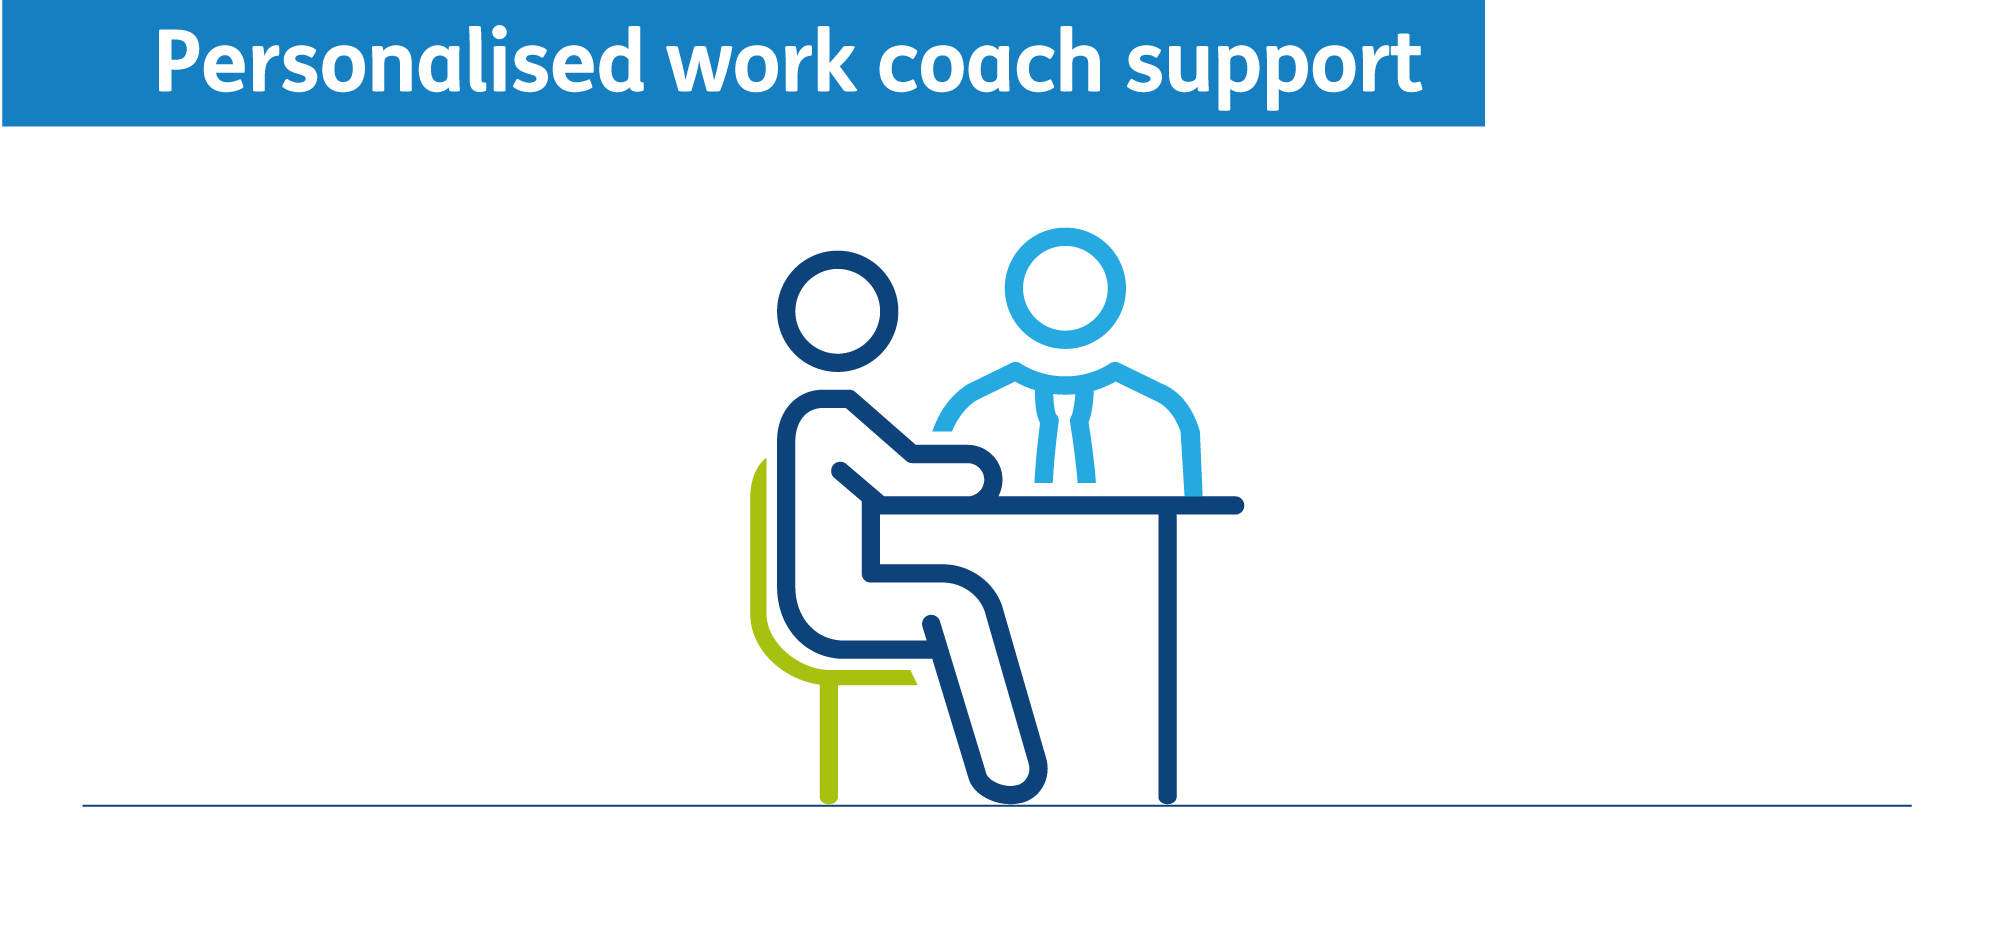 Personalised work coach support